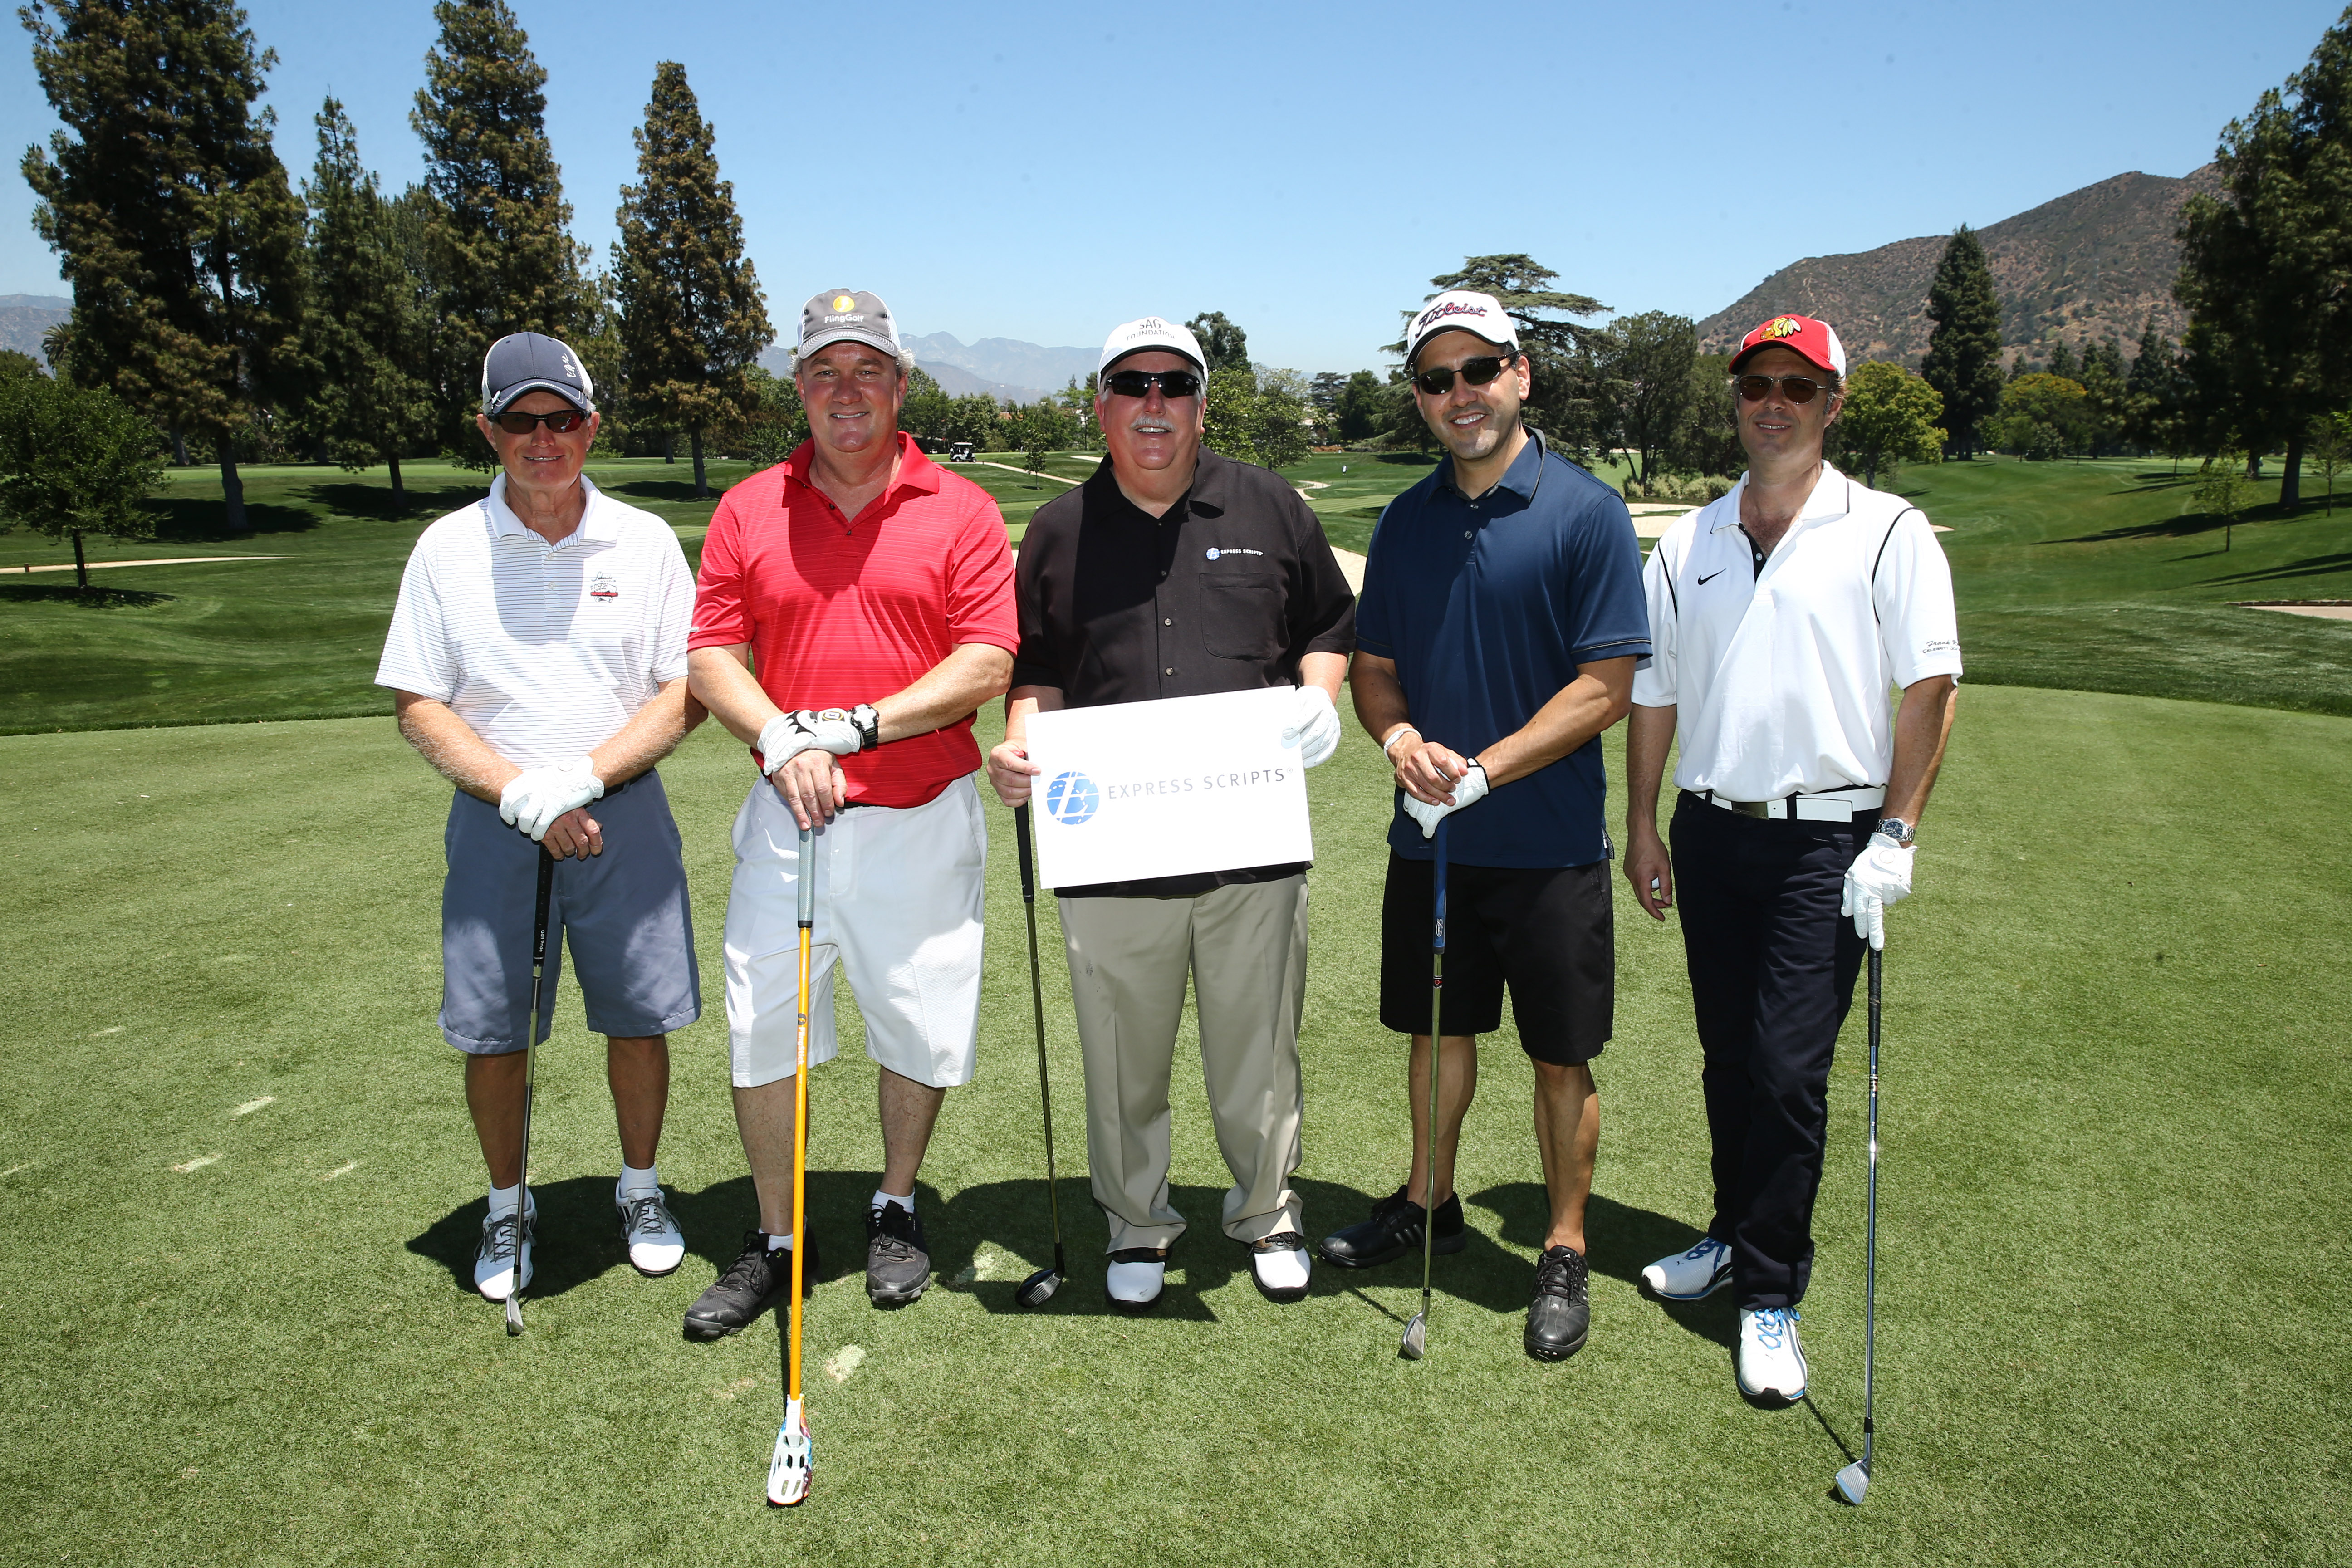 Terry Young, Greg Mason, Christopher Rowland, Michael Estrada and Carlos Bernard of Team Express Scripts play at the Screen Actors Guild Foundation's 6th Annual Los Angeles Golf Classic on June 8, 2015 in Burbank, California. (Photo by Mark Davis/Getty Images for The Screen Actors Guild Foundation)